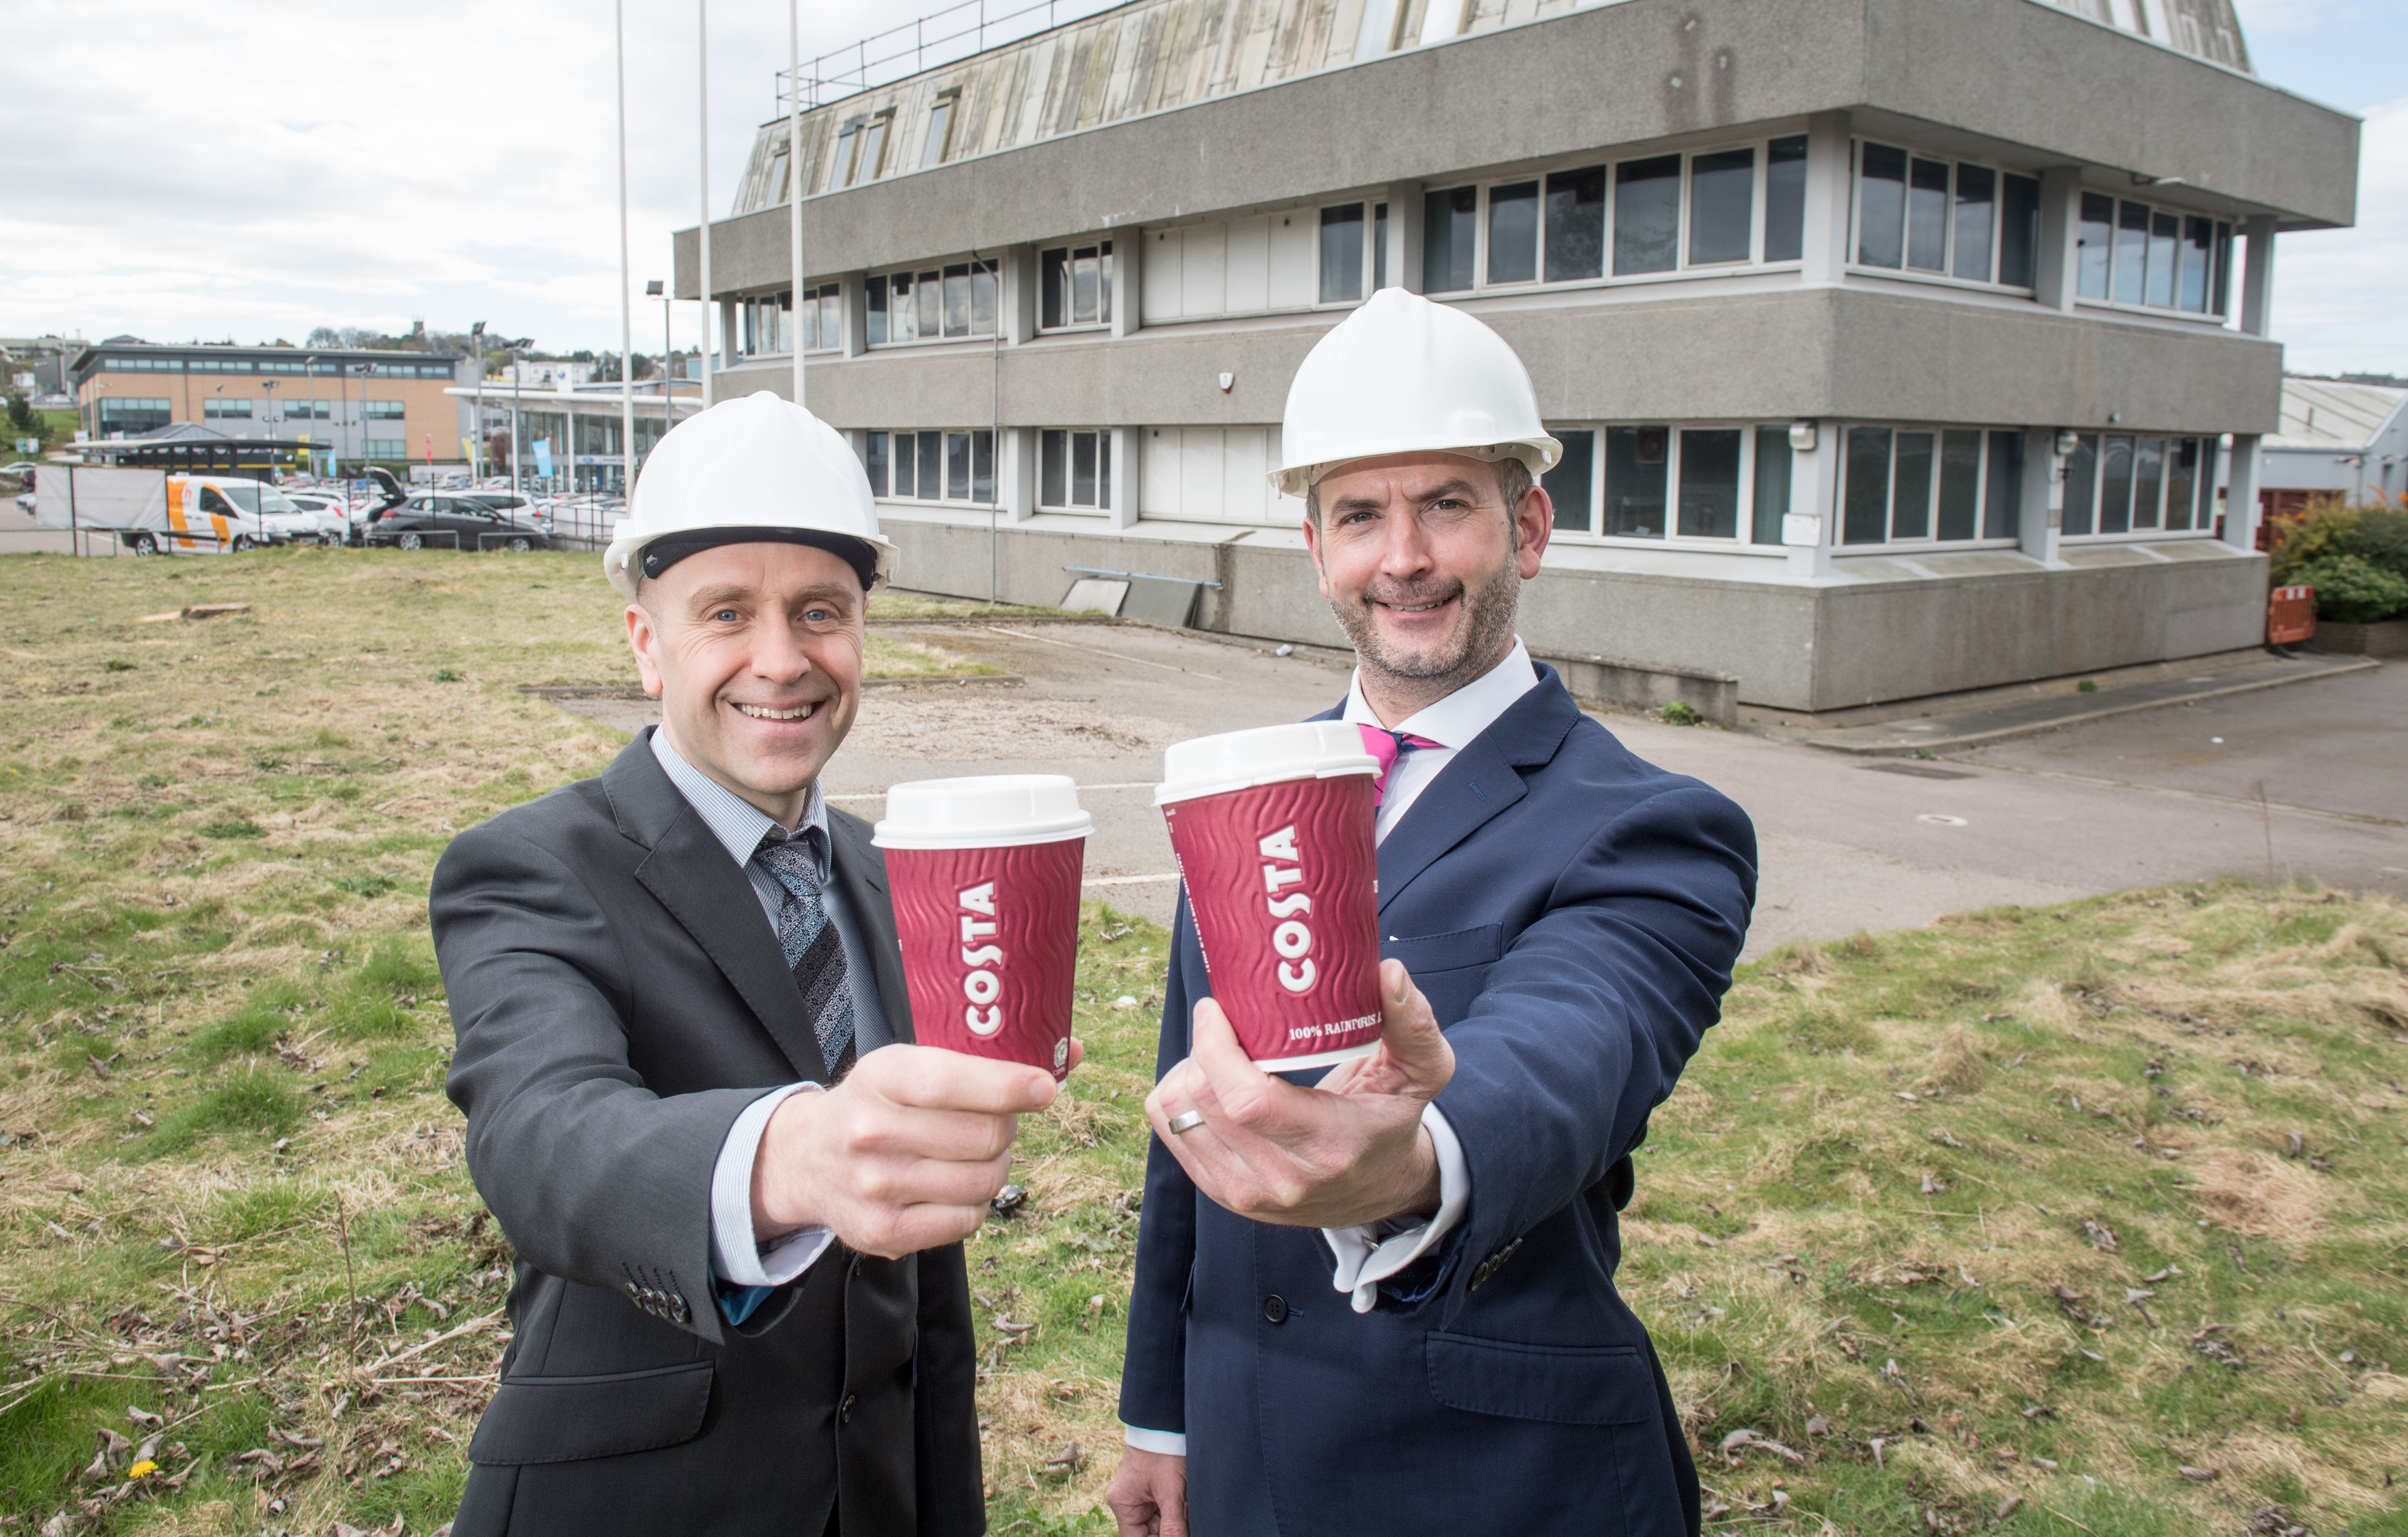 Aberdeen, Scotland, Thursday 20th April 2017  An Aberdeen office that has lain vacant for almost two years is to be raised to the ground this week after development and investment firm, West Coast Estates secured planning permission to transform it into a drive-thru Costa Coffee.  Pictured is:  Doug Gardner and Paul Richardson from the surveying company Ryden  Picture by Michal Wachucik / Abermedia